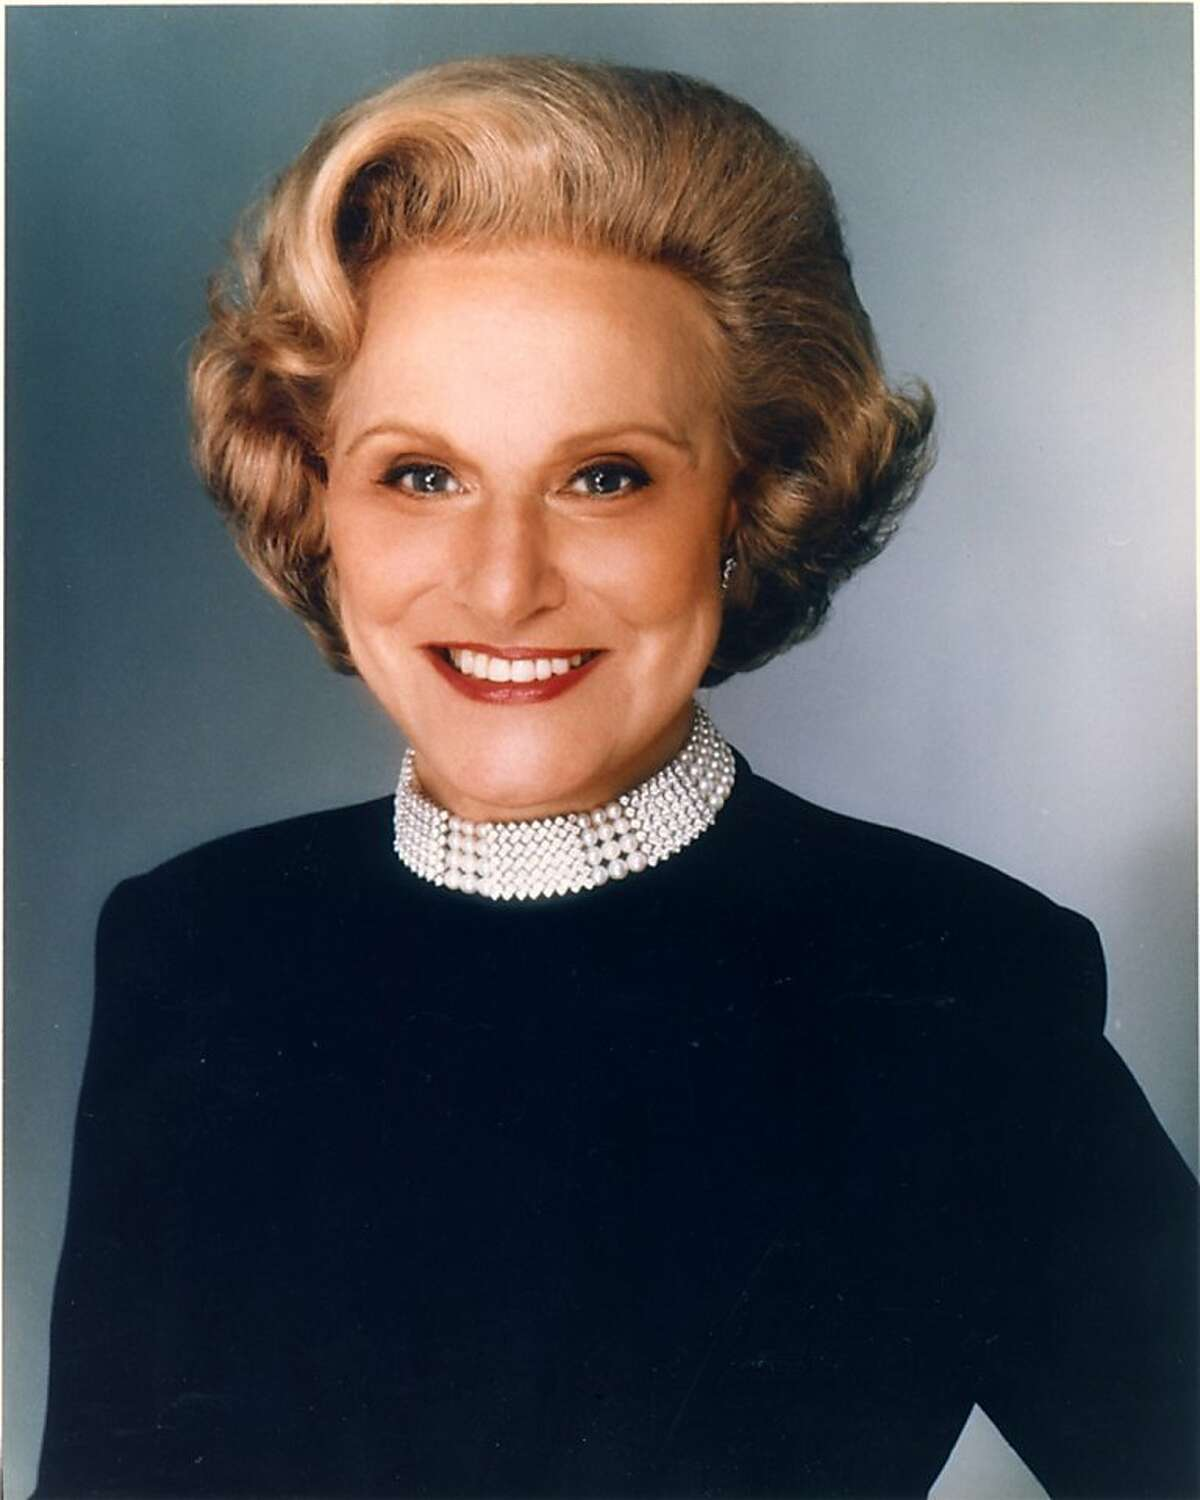 """This undated handout photo courtesy of Universal Uclick shows Pauline Esther Friedman Phillips, who founded the most widely syndicated column in the world, the """"Dear Abby"""" advice column, in 1956. Pauline Phillips, who consoled millions around the world as the creator of the iconic Dear Abby advice column, has died at the age of 94, her syndication service said January 17, 2013. In a statement, Universal Uclick said Phillips -- who wrote Dear Abby from 1956 until her daughter Jeanne Phillips formally took over the column and her alias Abigail Van Buren in 2002 -- died Wednesday in Minneapolis, Minnesota. She had fought """"a long battle"""" with Alzheimer's disease, it said. """"I have lost my mother, my mentor and my best friend,"""" Jeanne Phillips said in the statement. Phillips, born Pauline Esther Friedman, was the twin sister of Esther Pauline Friedman, better known as the equally famous agony aunt Ann Landers. She died in 2002 after she was diagnosed with cancer. = RESTRICTED TO EDITORIAL USE - MANDATORY CREDIT """" AFP PHOTO / UNIVERSAL UCLICK/"""" - NO MARKETING NO ADVERTISING CAMPAIGNS - DISTRIBUTED AS A SERVICE TO CLIENTS = HO/AFP/Getty Images"""